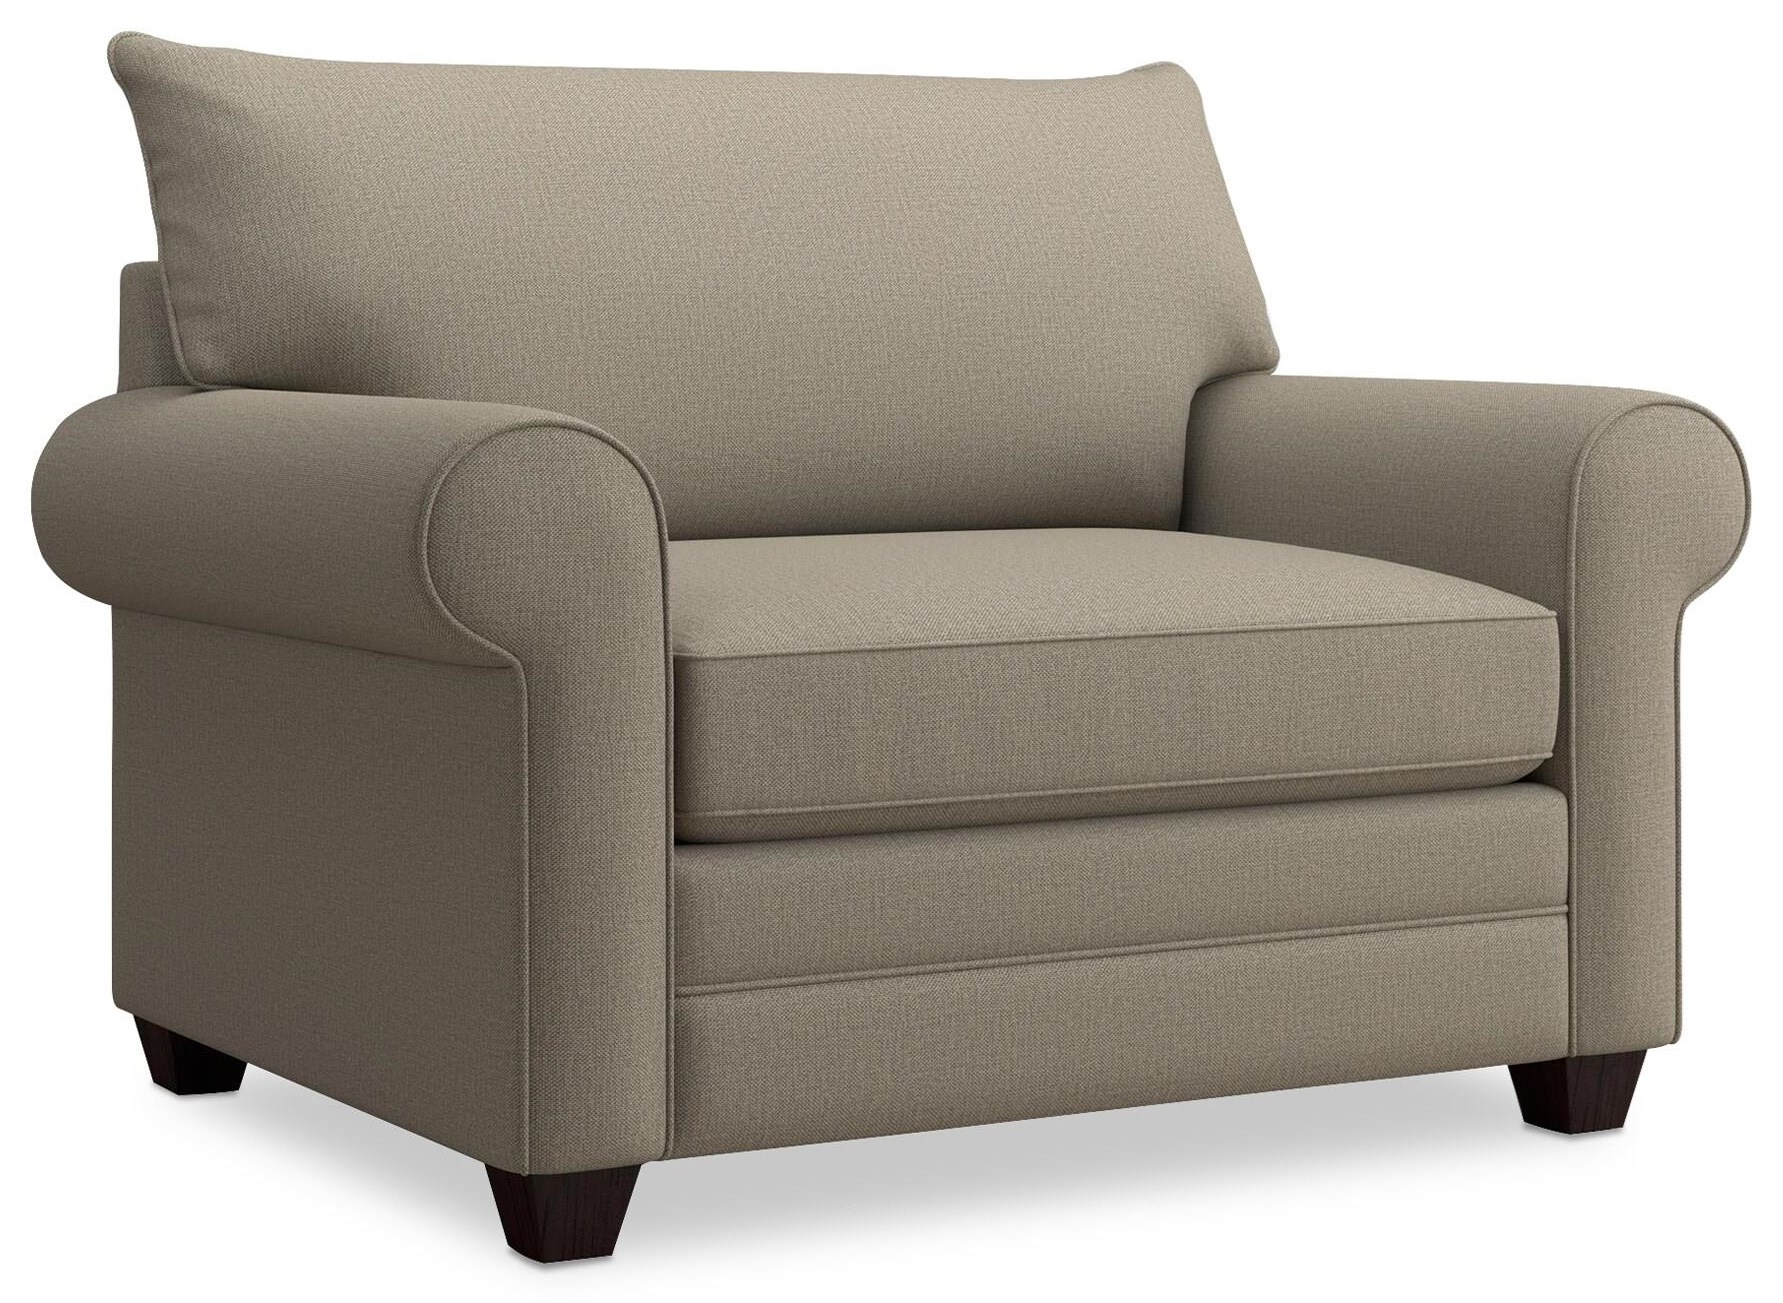 Alexander Chair and a Half by Bassett at Crowley Furniture & Mattress